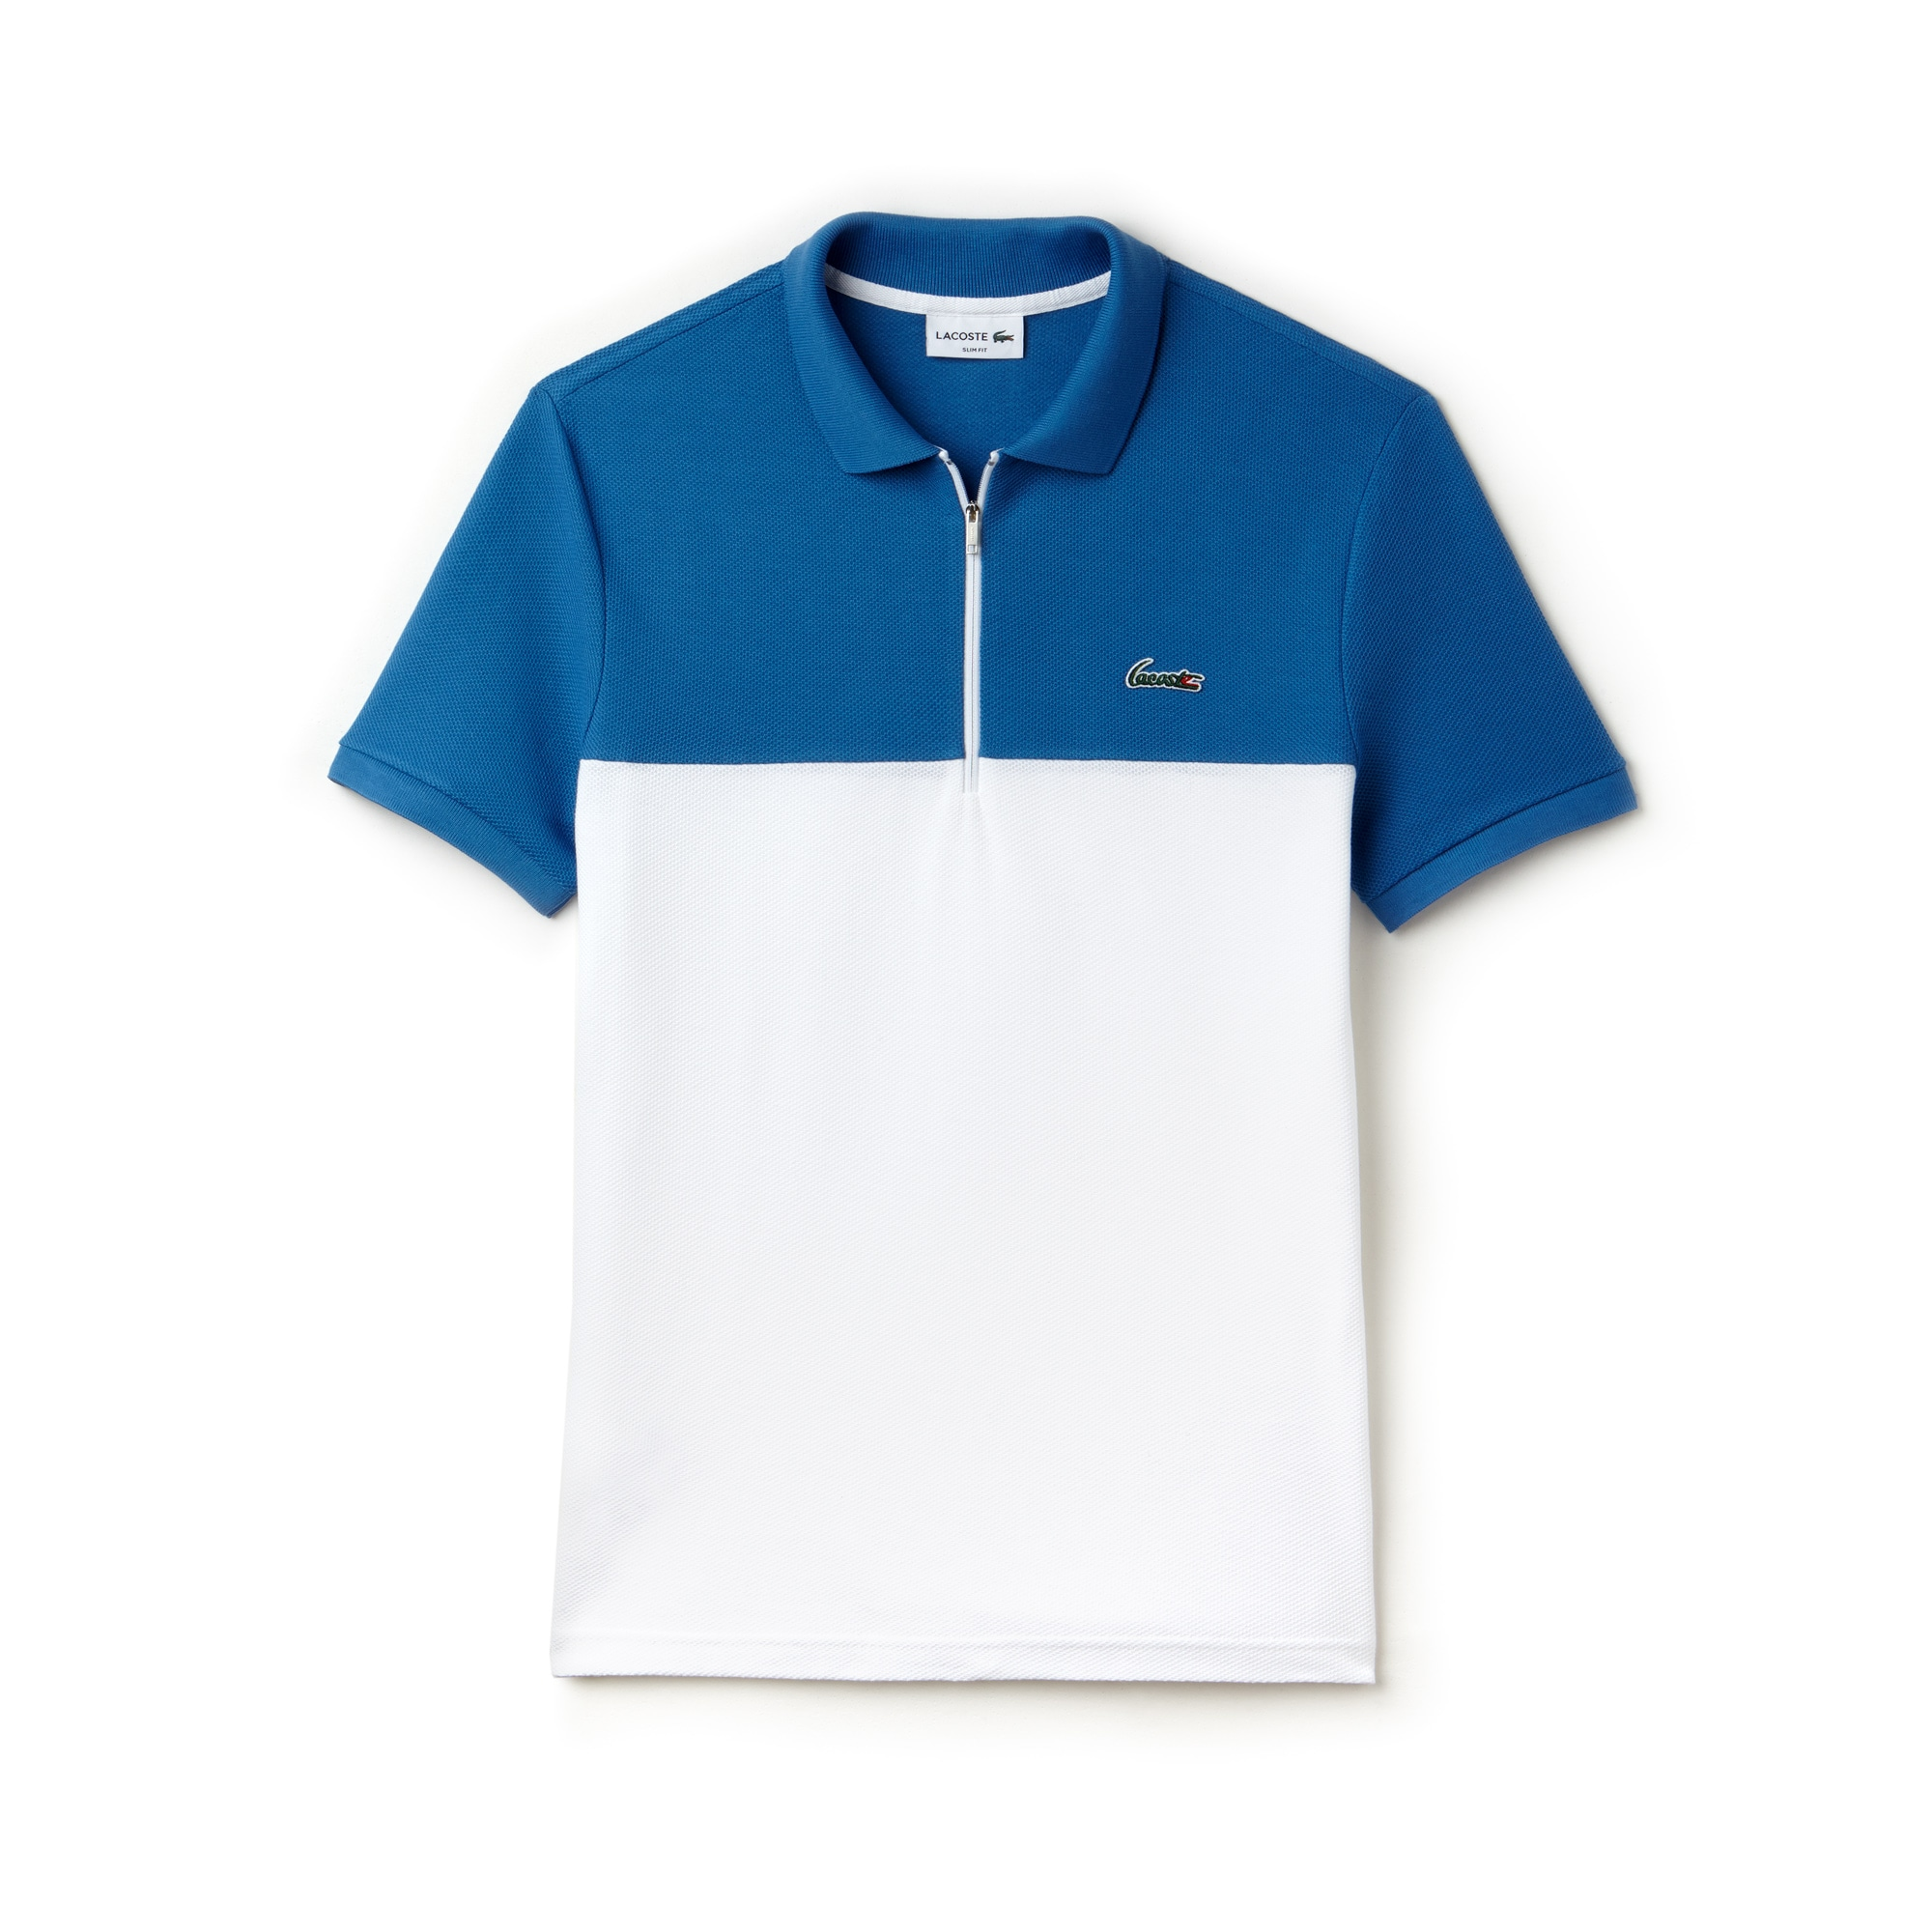 Herren LACOSTE Slim Fit Poloshirt mit Colorblocks